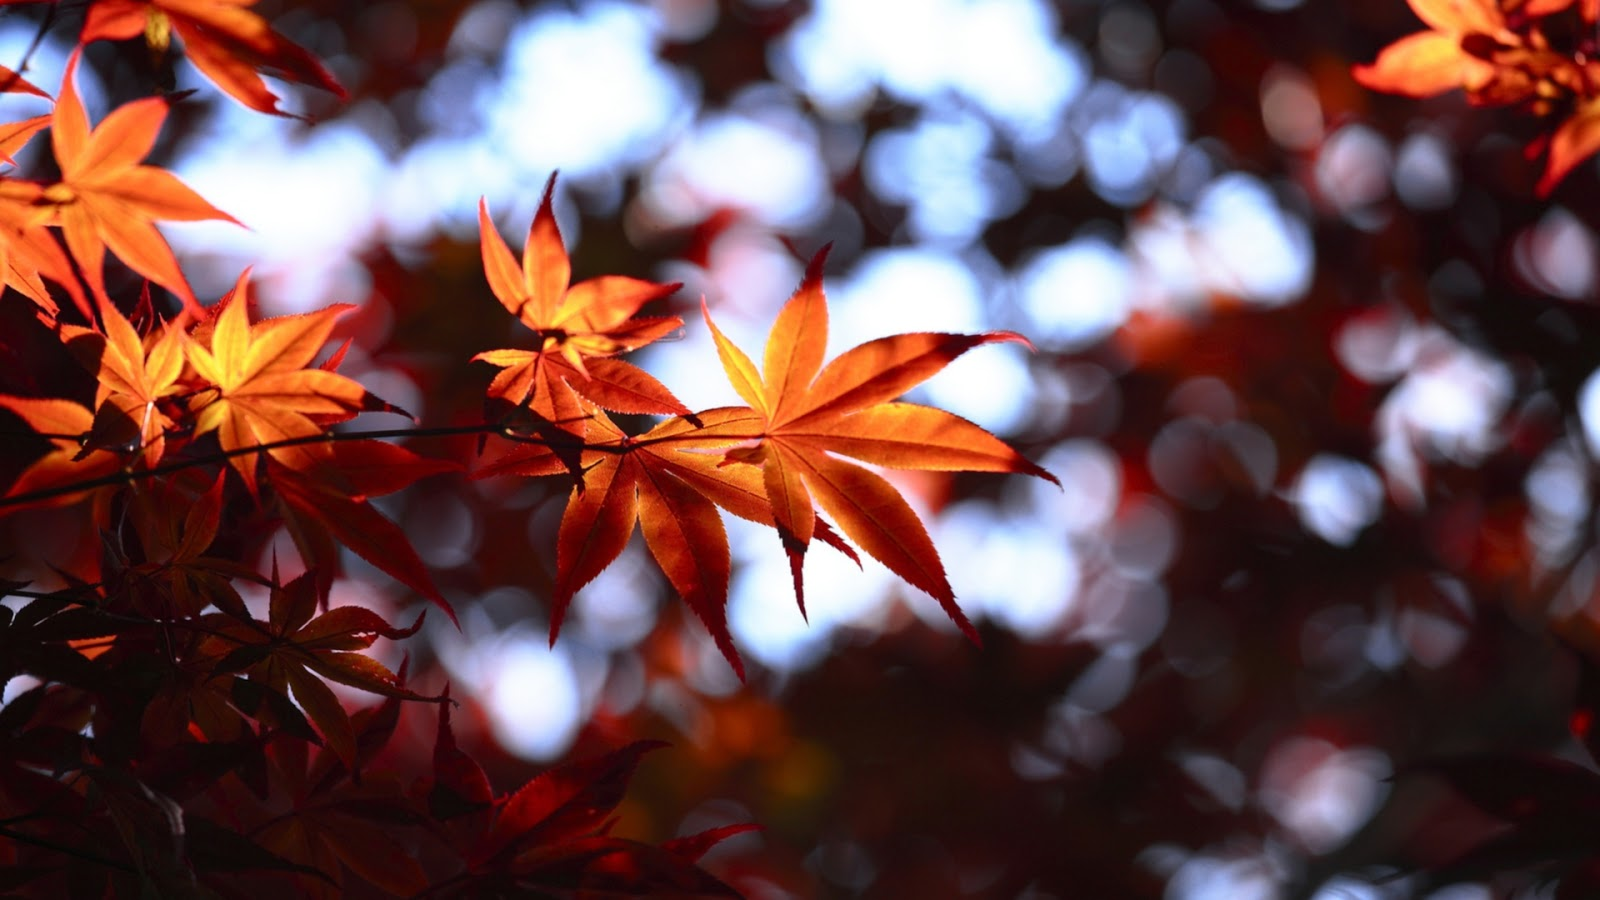 Labels Red Autumn Leaves Photography Hd Wallpapers For: Mystery Wallpaper